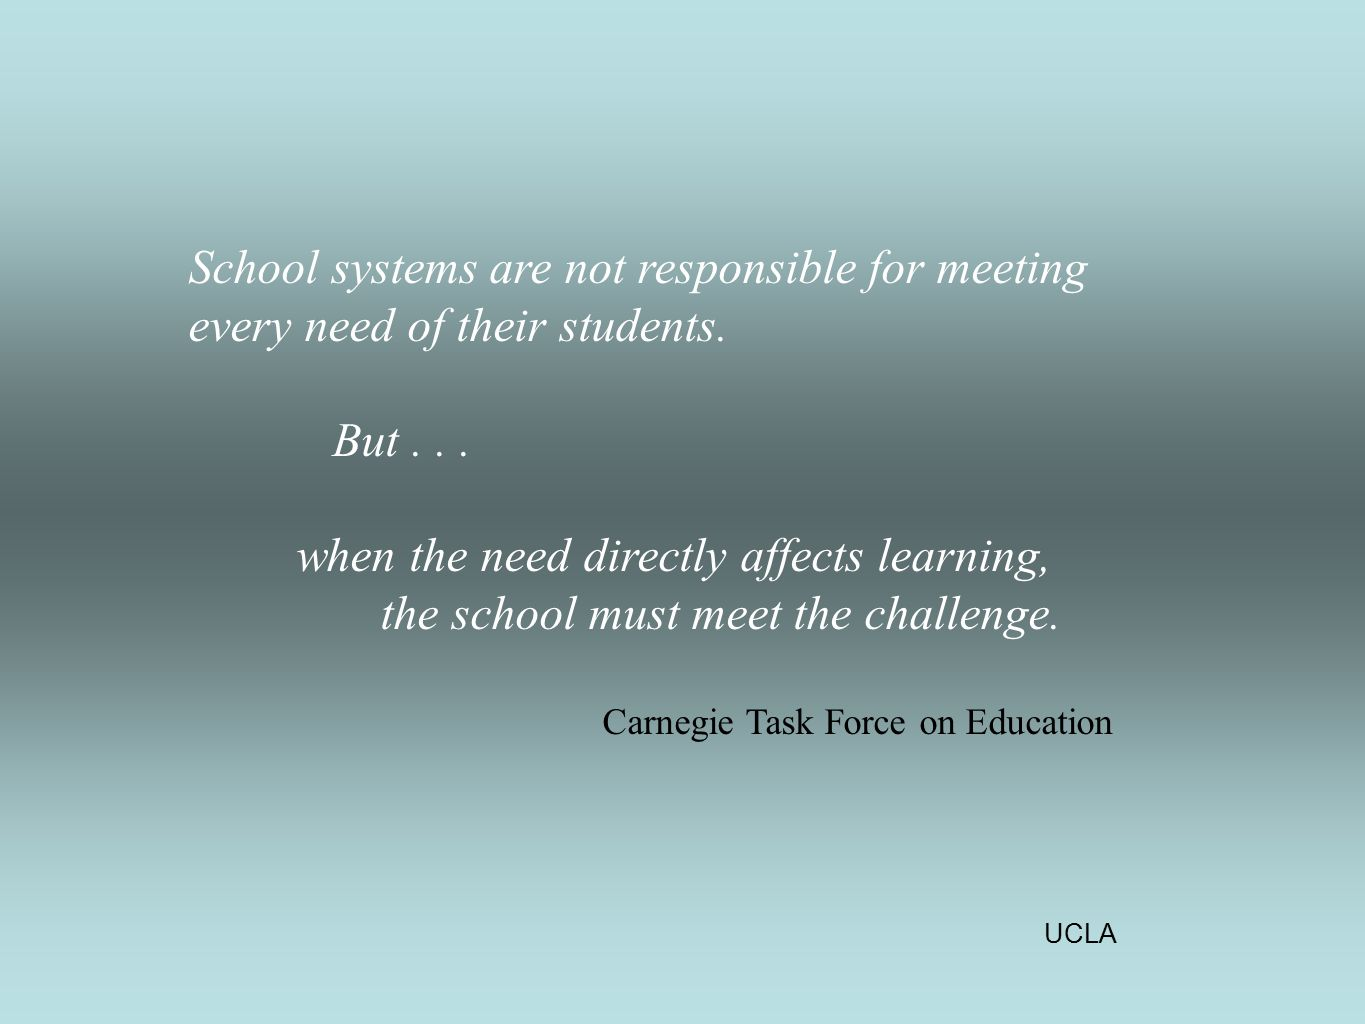 UCLA School systems are not responsible for meeting every need of their students.